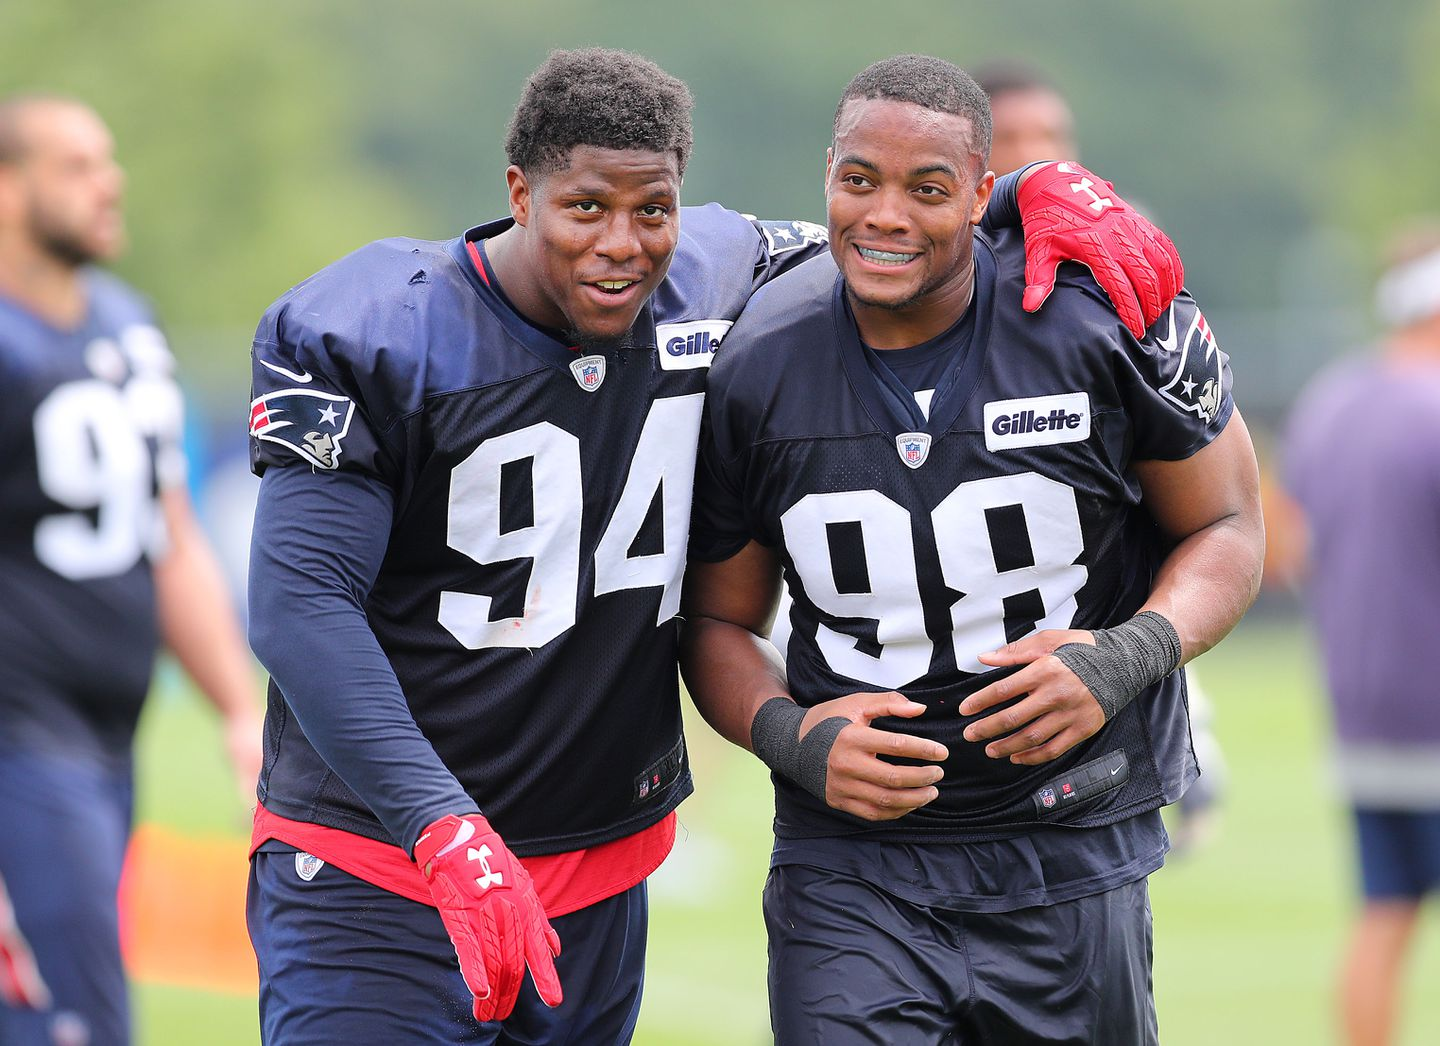 Patriots' Kony Ealy gets to work after missing first day - The ...